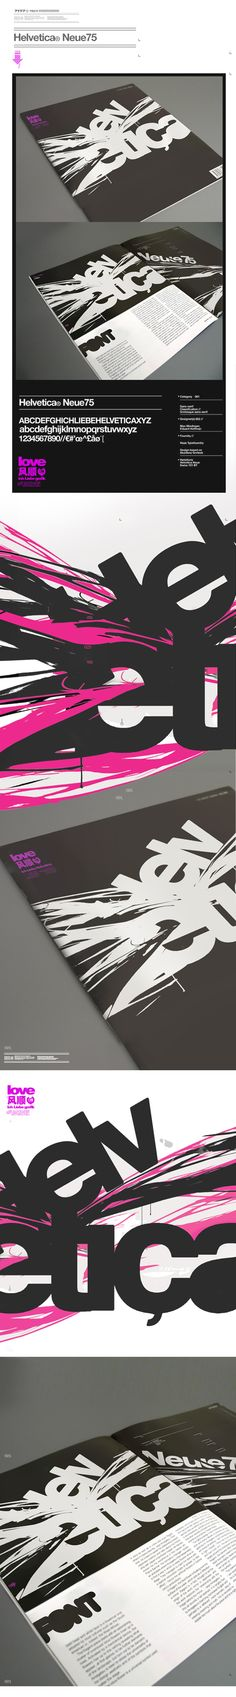 HERE//TO//CREATE// by SILO , via Behance